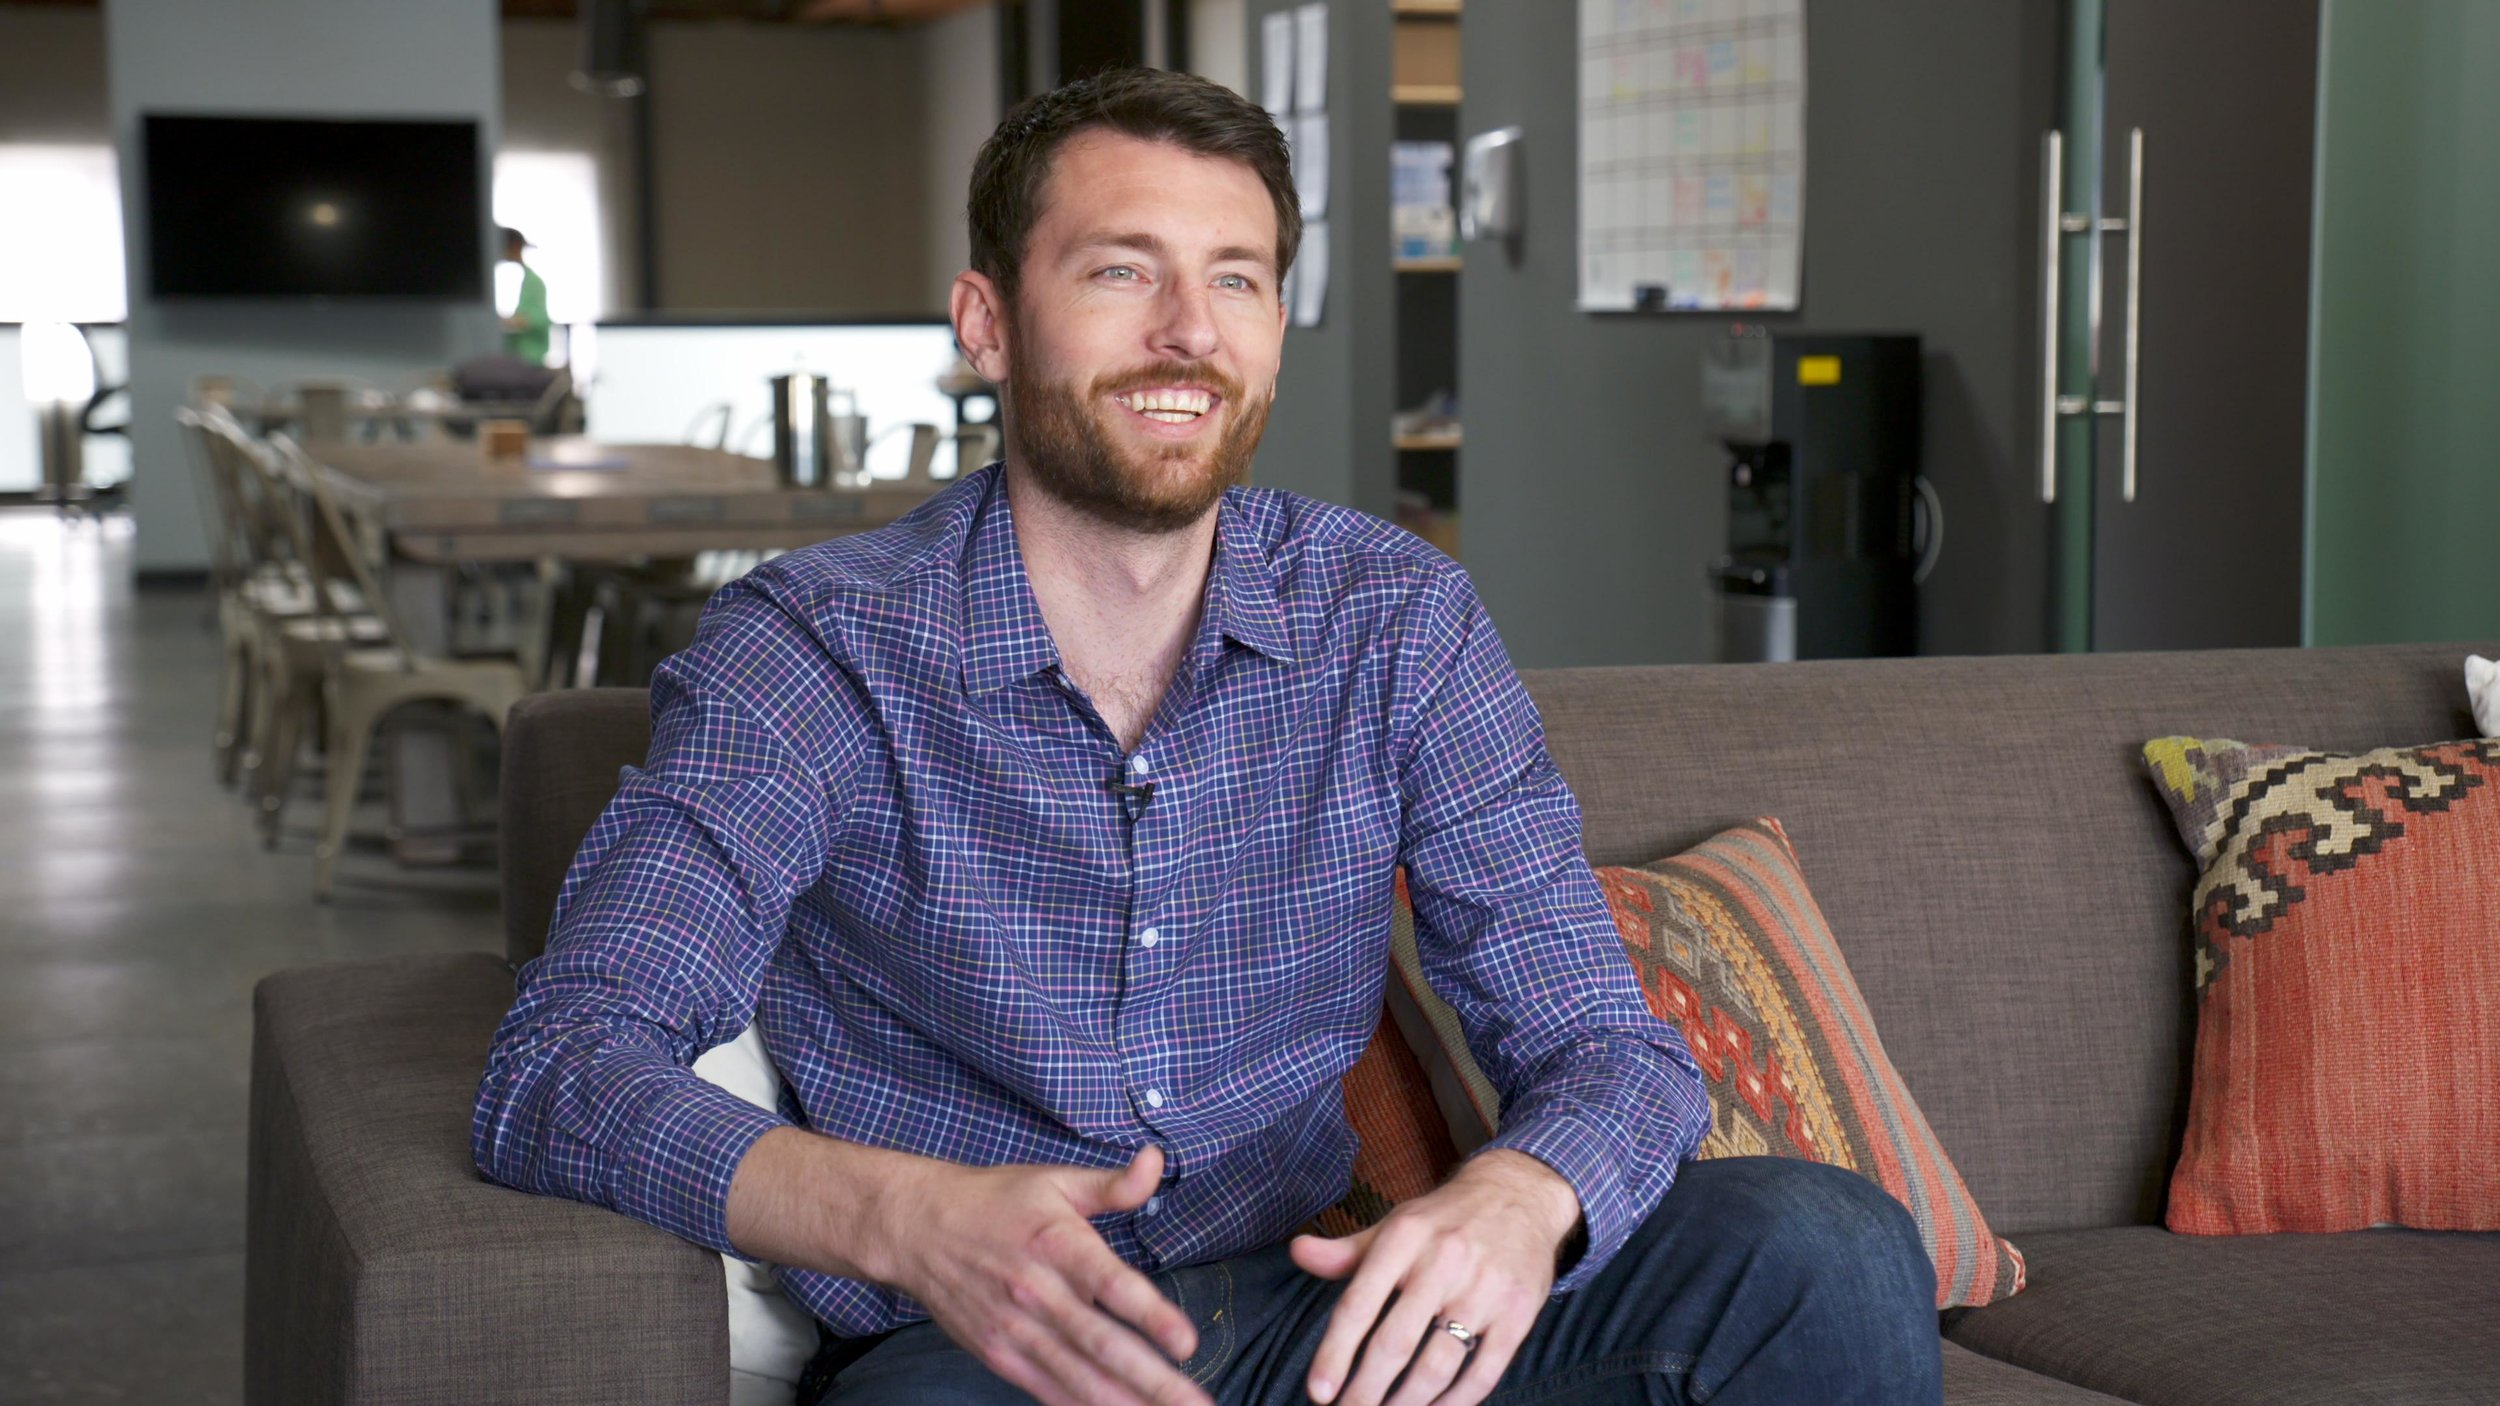 Austin Steed, Co-Founder and CEO of PickTrace